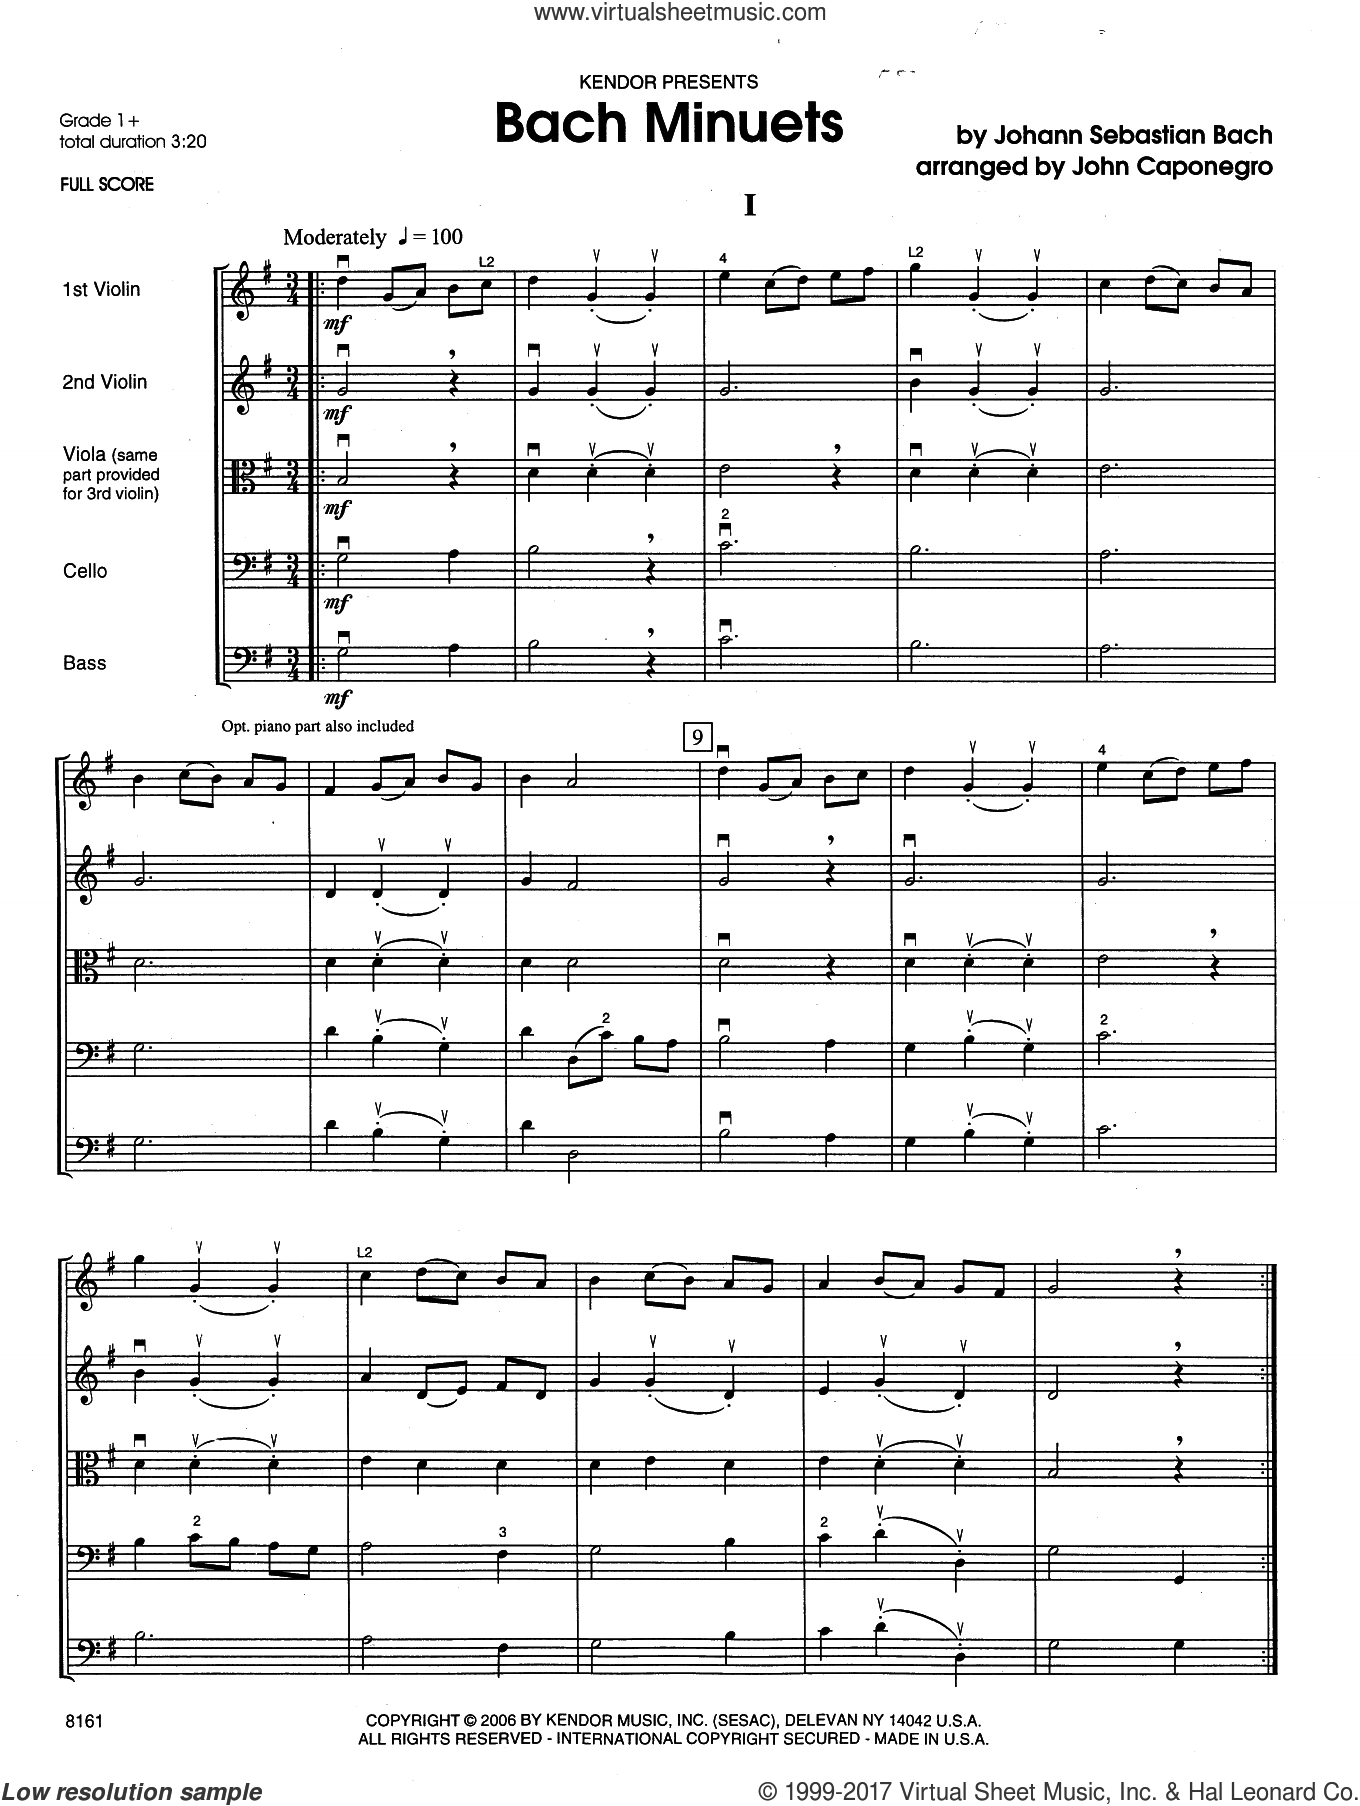 Bach Minuets (COMPLETE) sheet music for string orchestra by Johann Sebastian Bach and John Caponegro, classical score, intermediate skill level